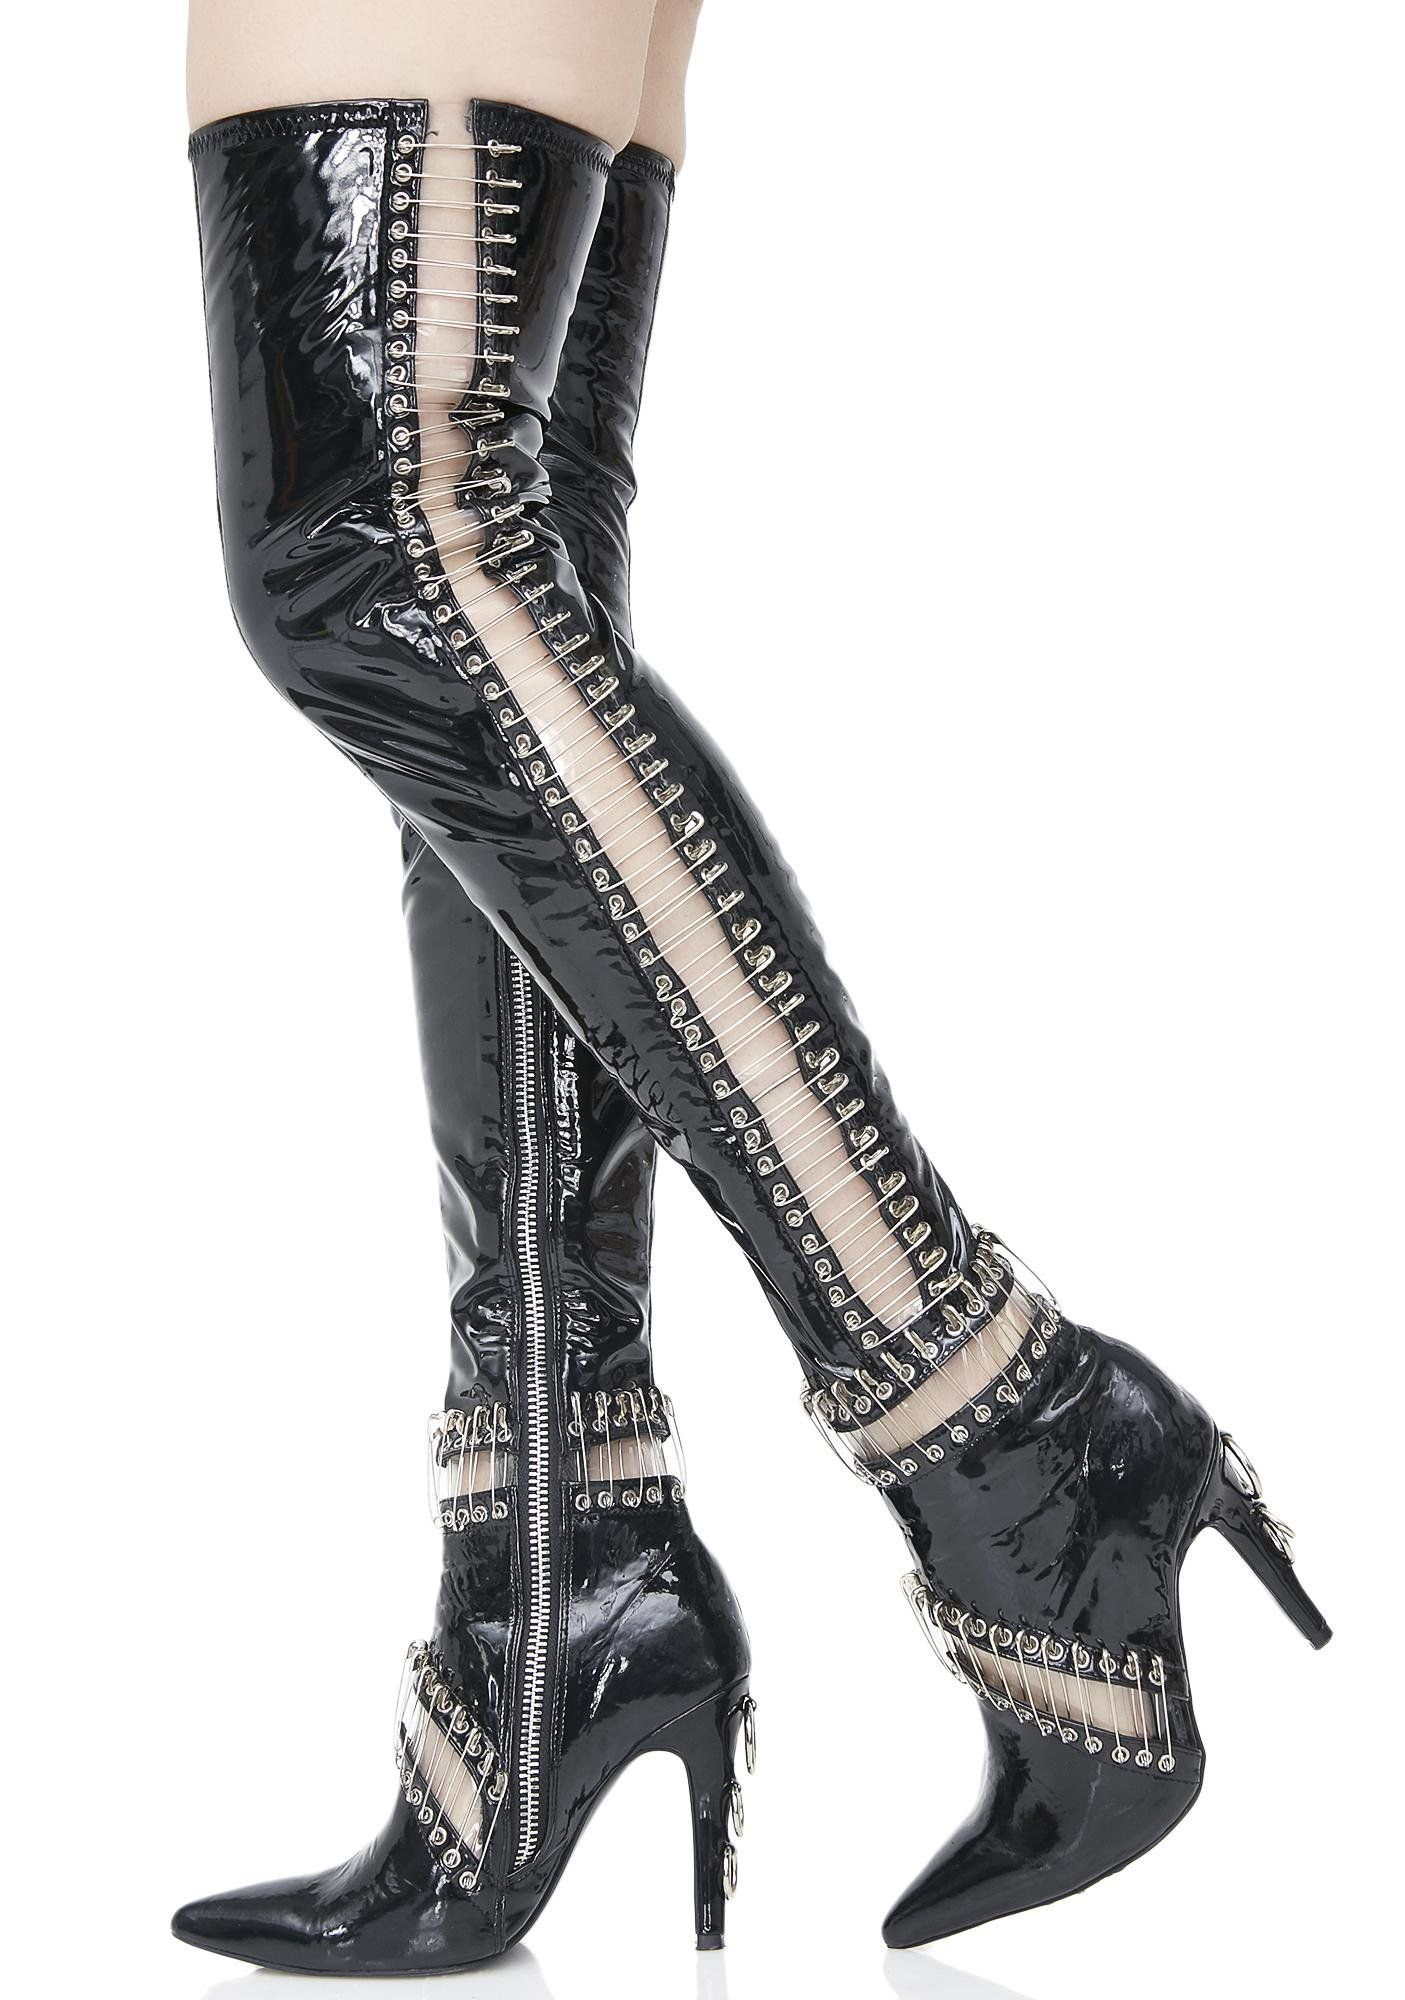 b6256de09ae2 Current Mood Pinned Thigh High Boots cuz once yew lock  em in